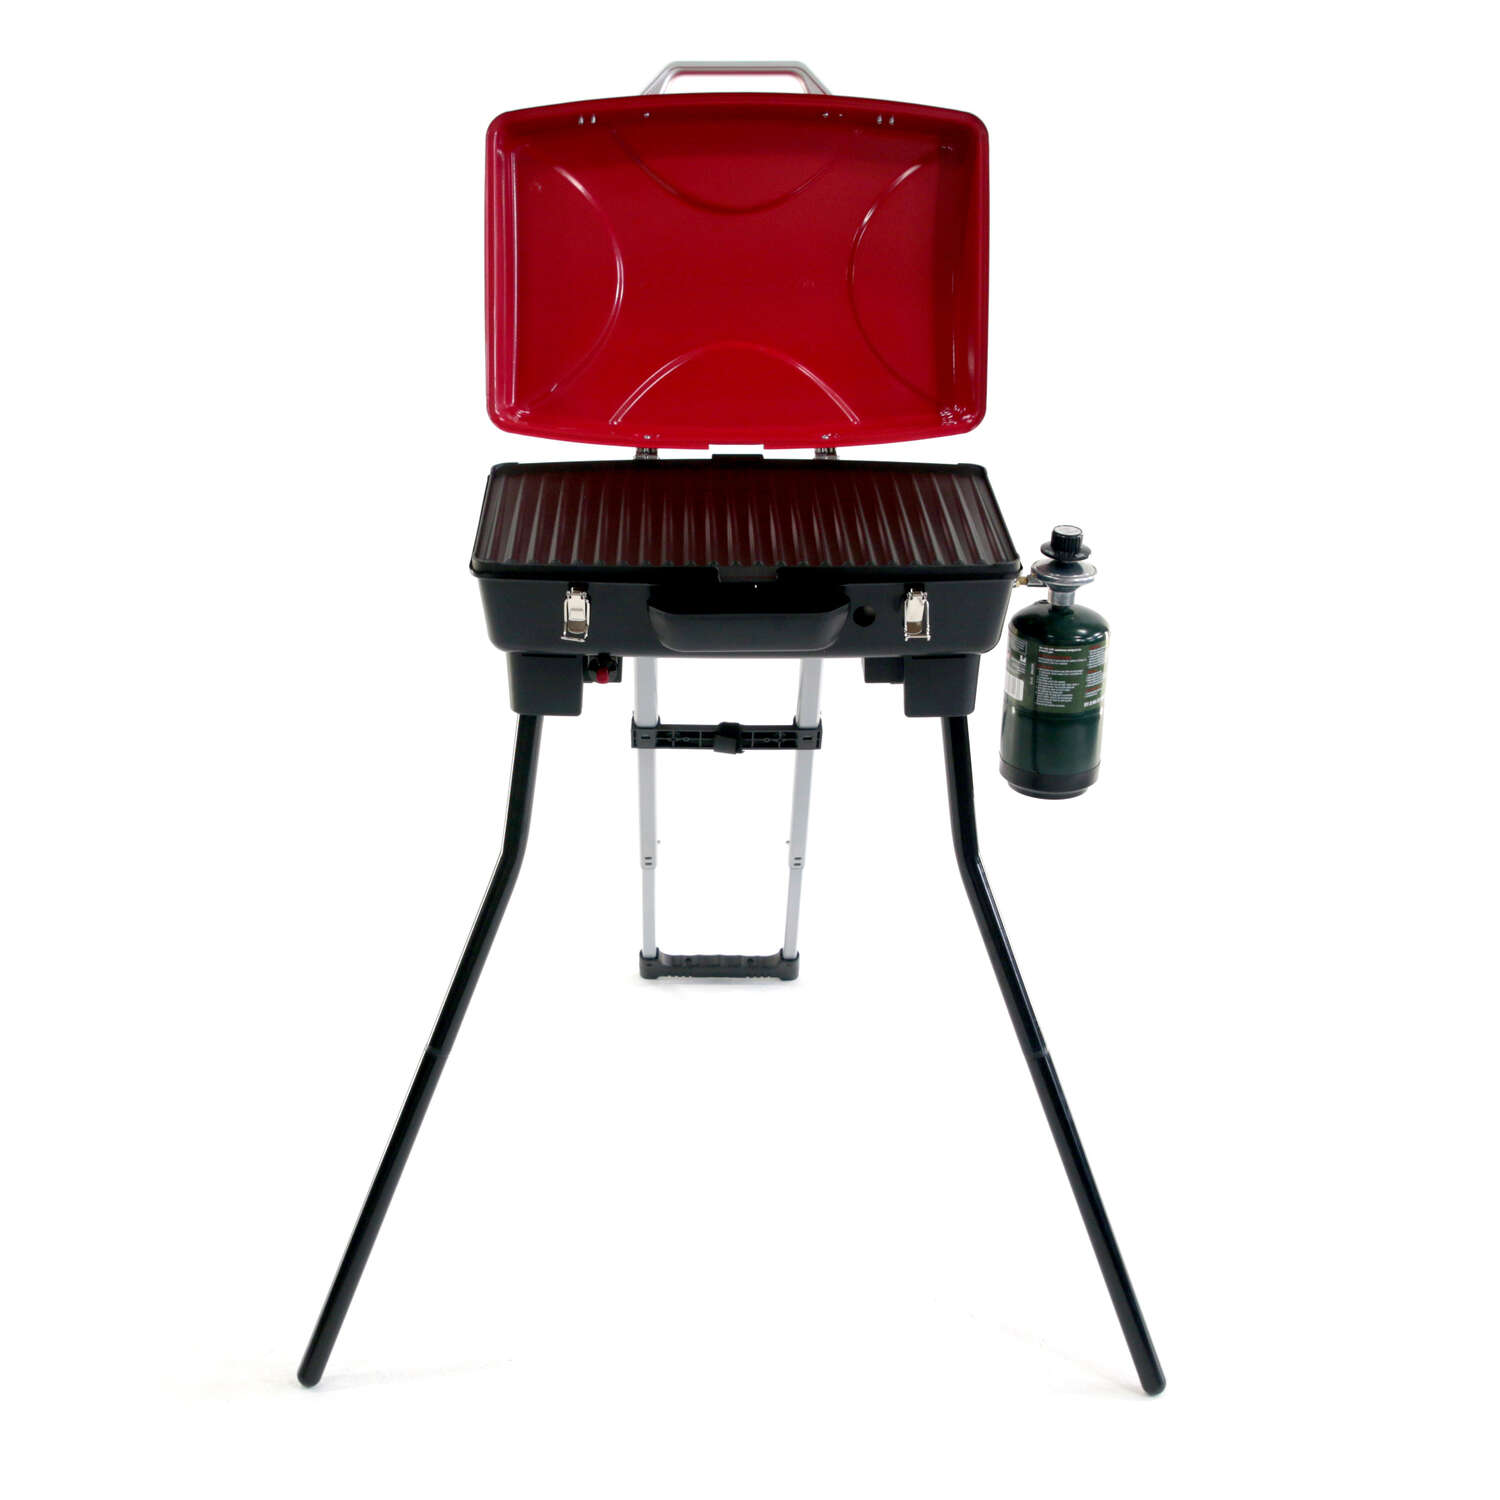 Blackstone  Dash  1 burners Propane  Red  Grill  7000 BTU